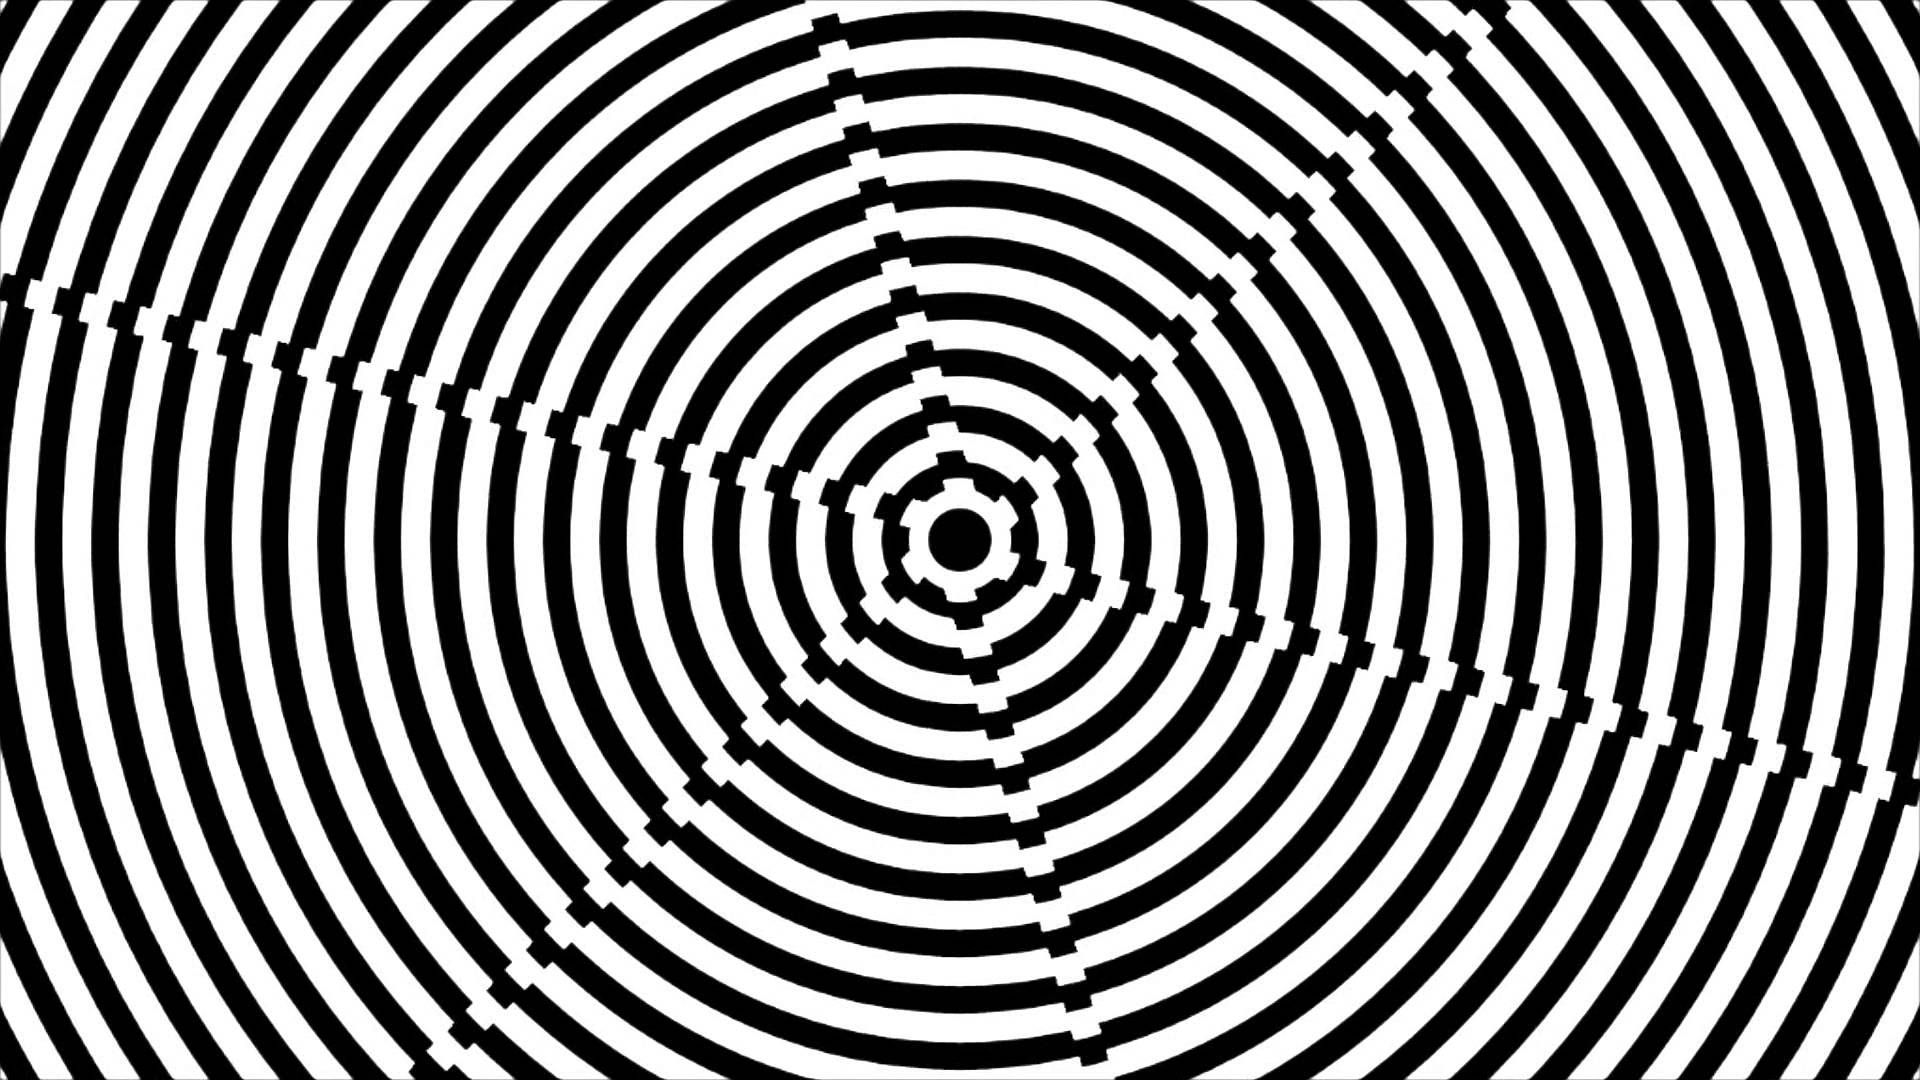 Hypnotism In a Third Person as a Diagnostic Modality - The